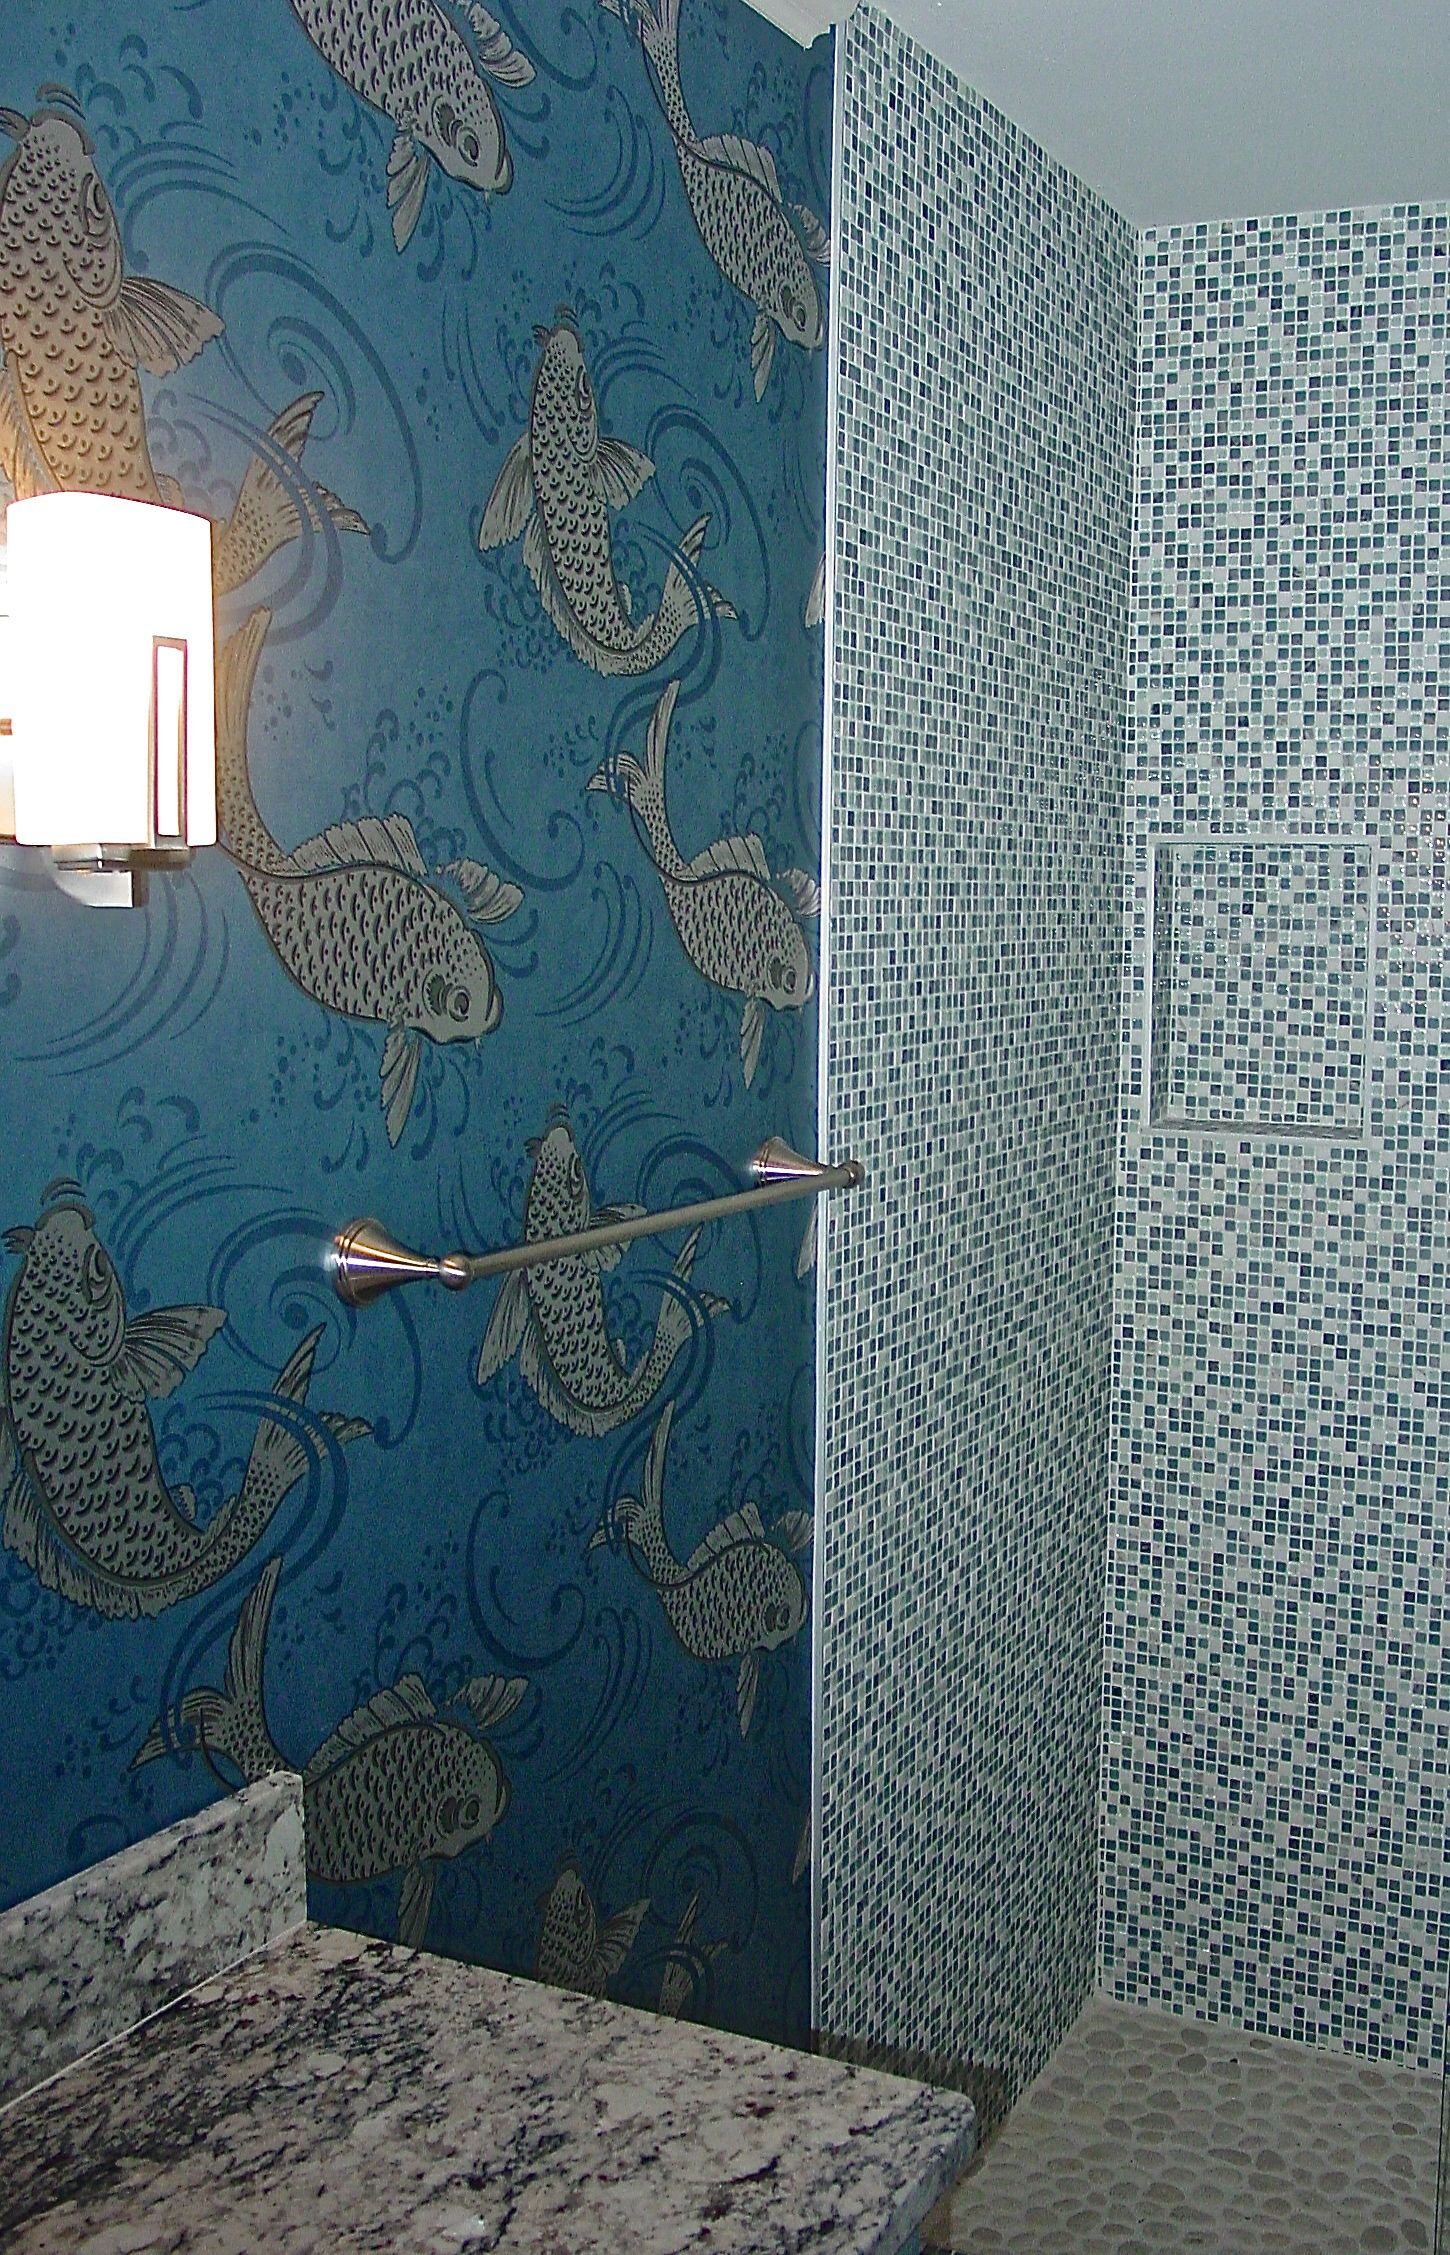 Koi jump and leap on a beautiful glimmering wallpaper from Osborne 1450x2255